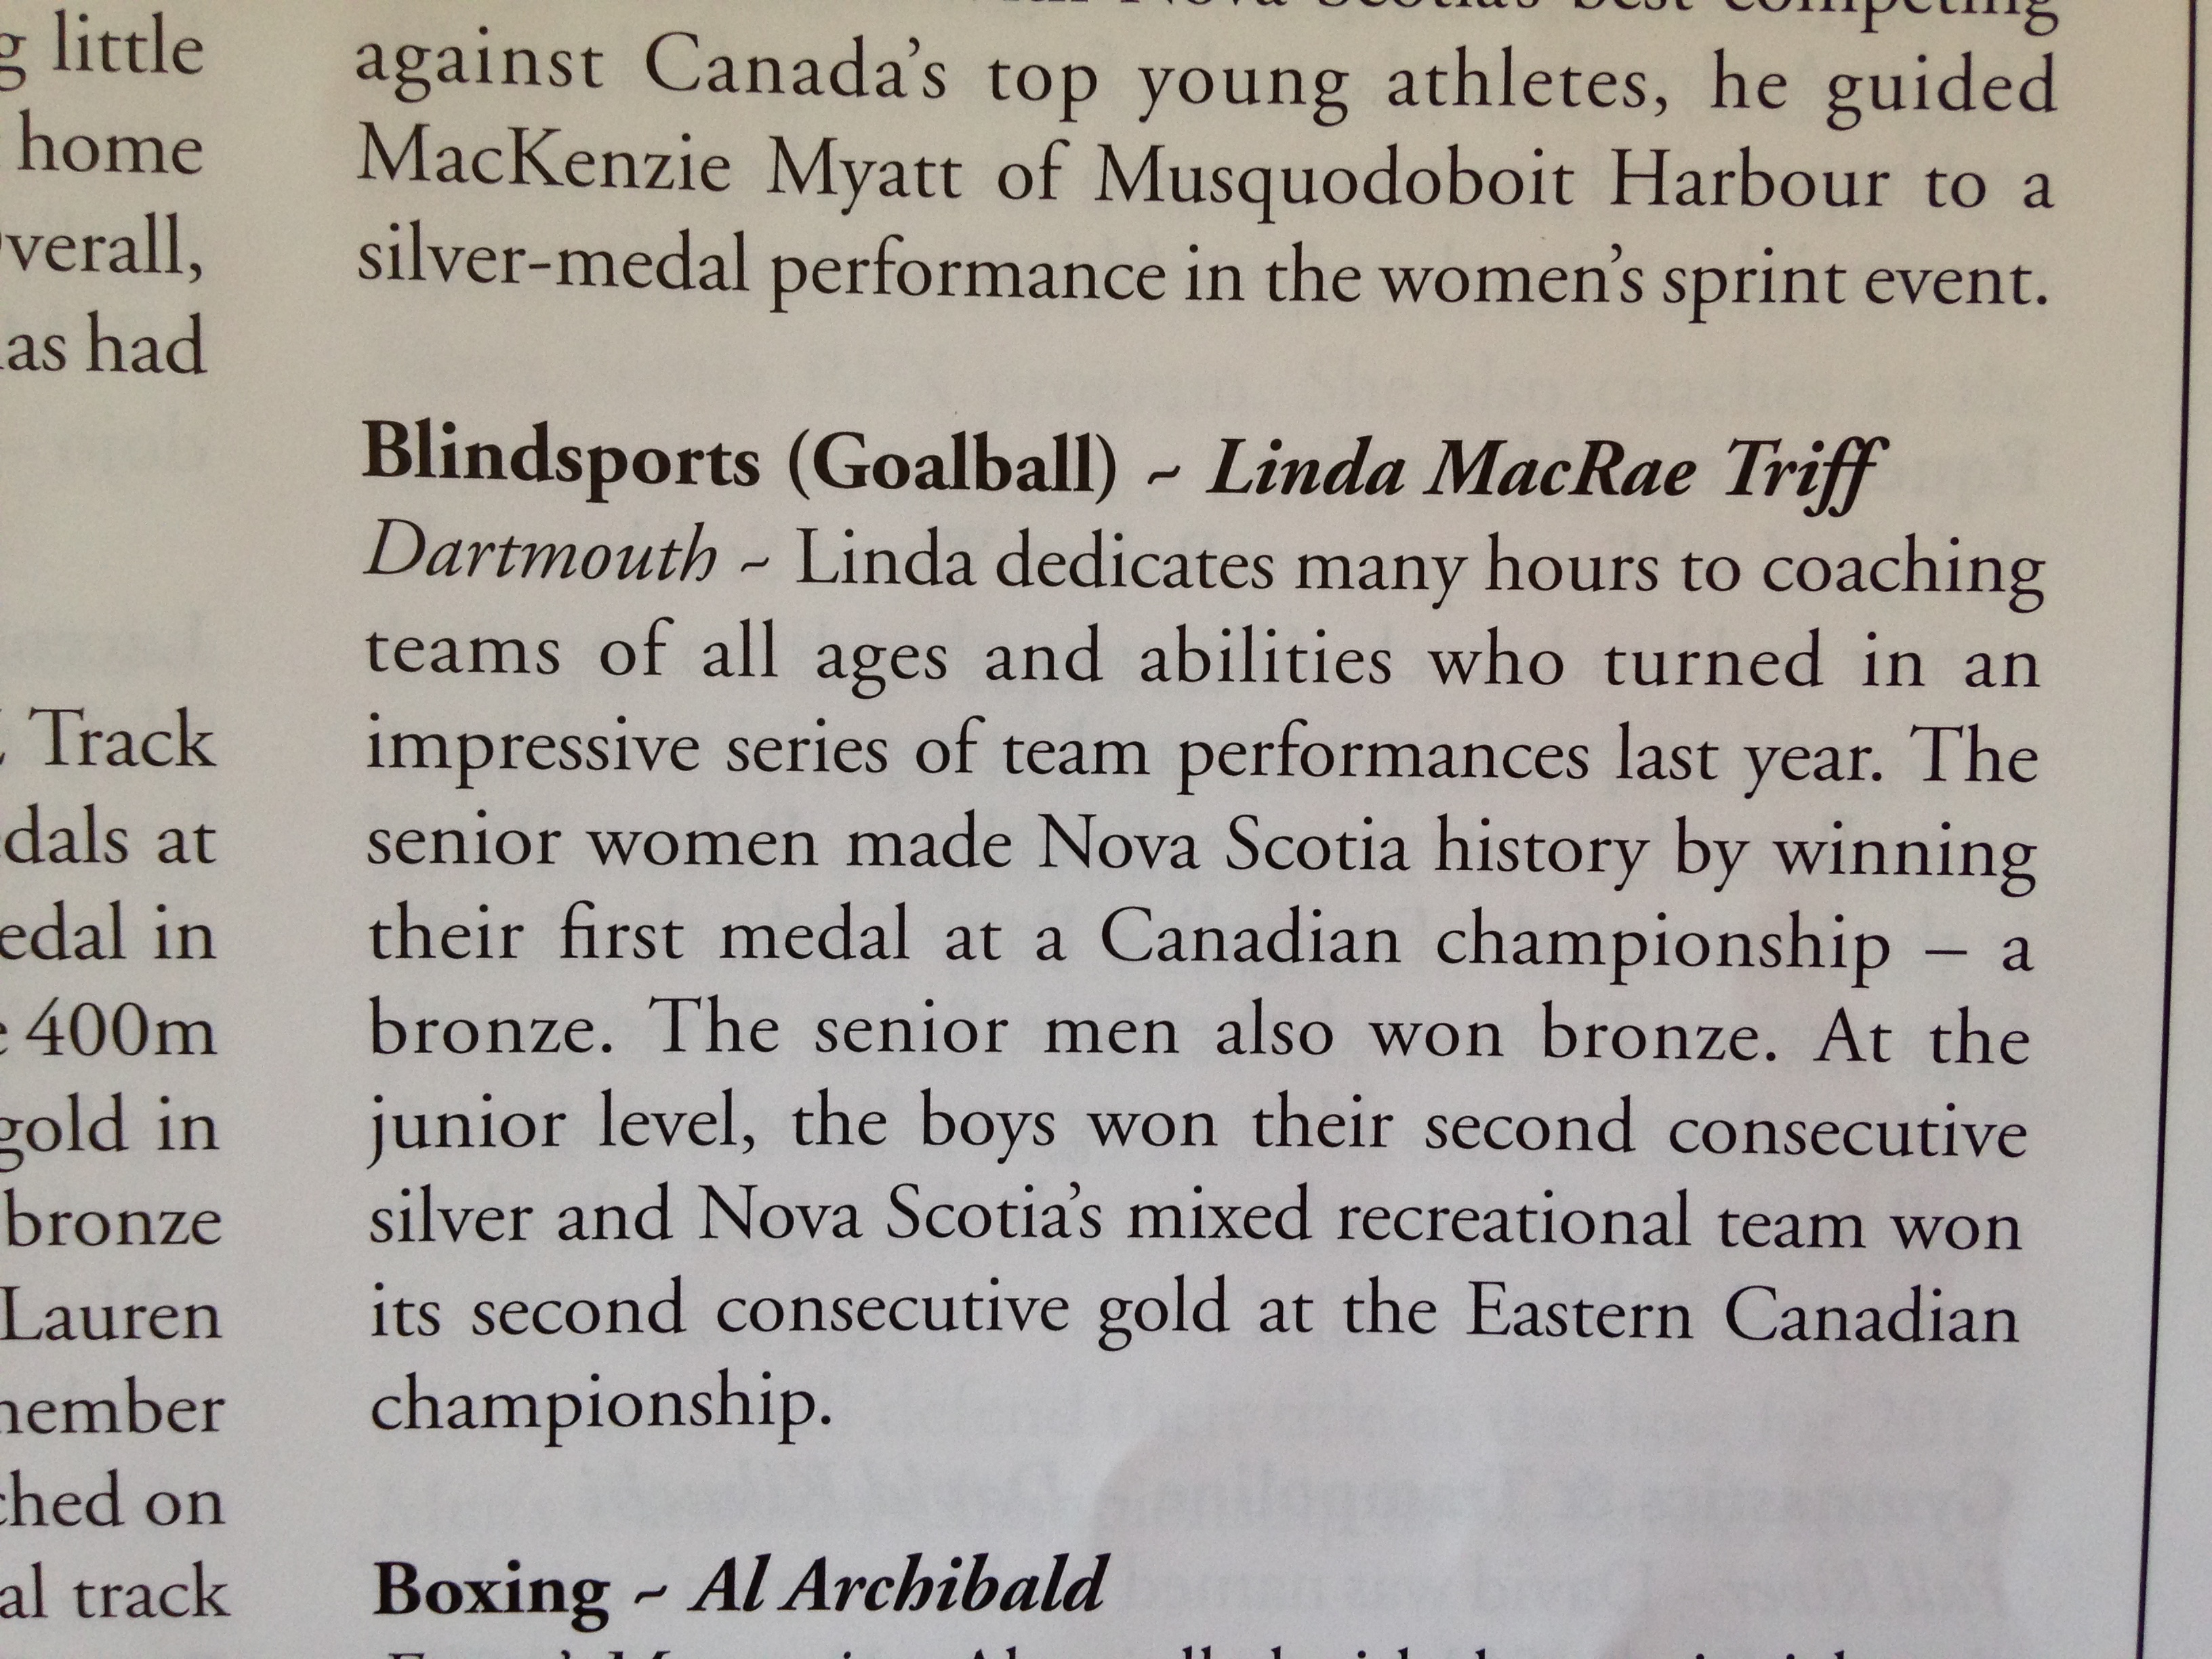 Linda dedicates many hours to coaching teams of all ages and abilities who turned in an impressive series of team performances last year. The senior women mande Nova Scotia history by winning their first medal at a Canadian championship - a bronze. The senior men also won bronze. At the junior level, the boys on their second consecutive silver and Nova Scotia's mixed recreational team won its second consecutive gold at the Eastern Canadian championship.